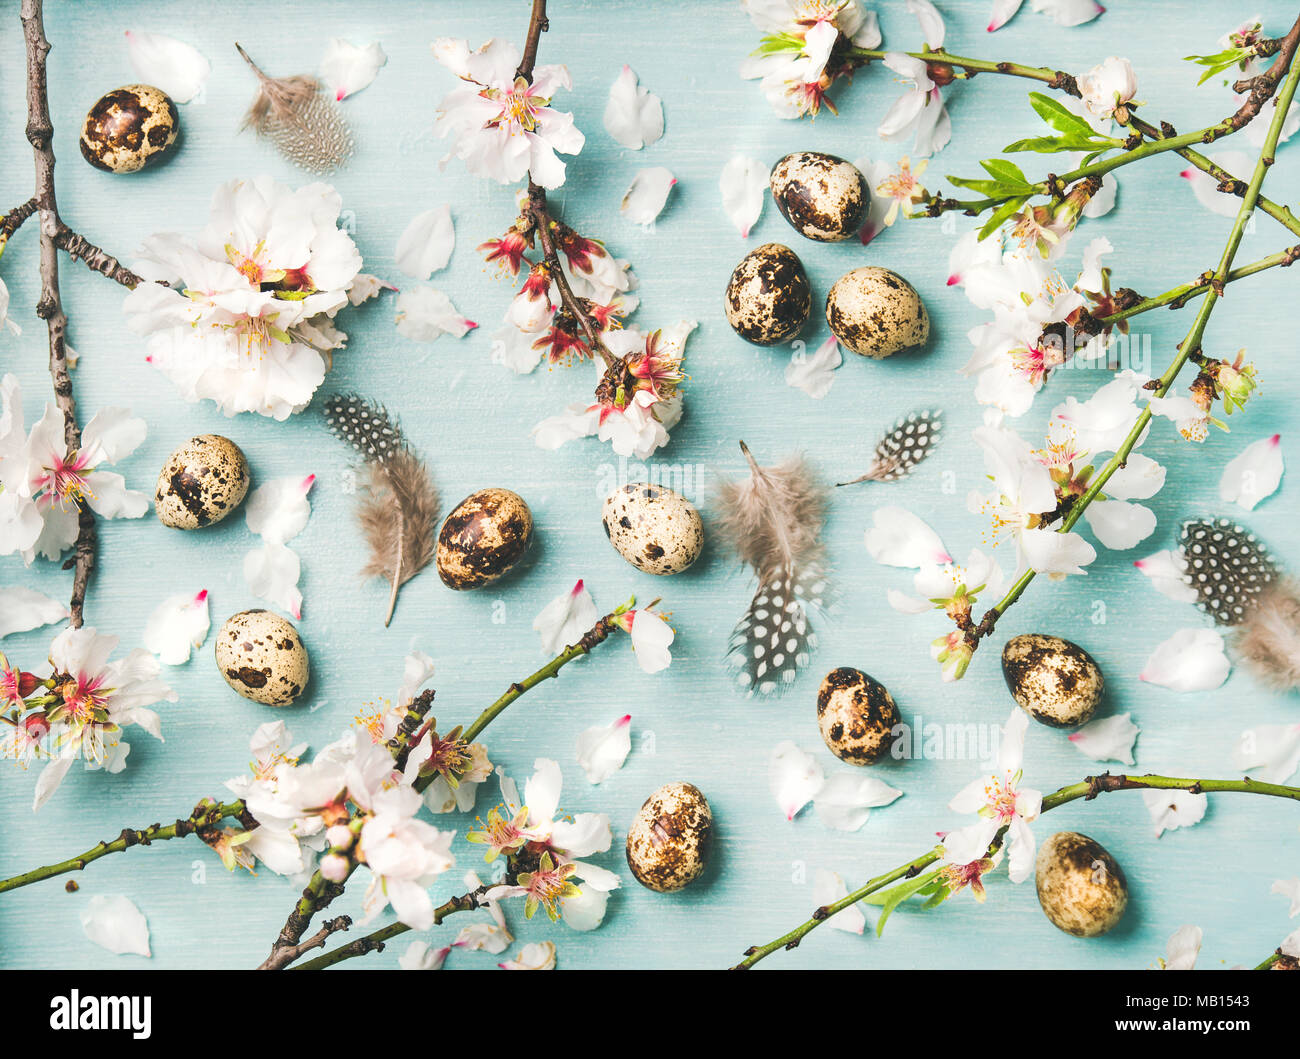 easter holiday background, texture and wallpaper. flat-lay of tender